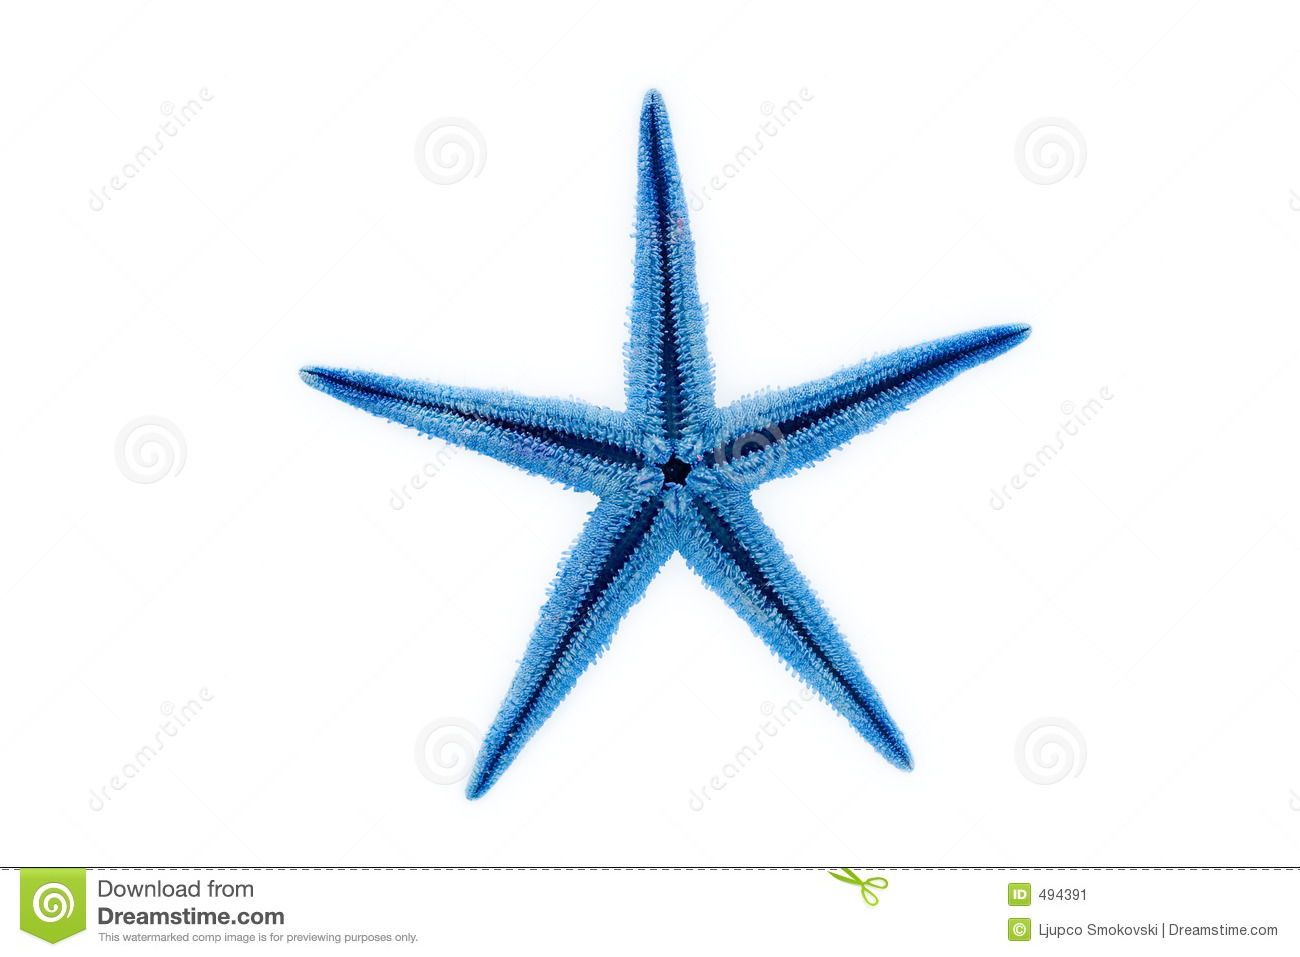 Blue Starfish Stock Image - Image: 494391